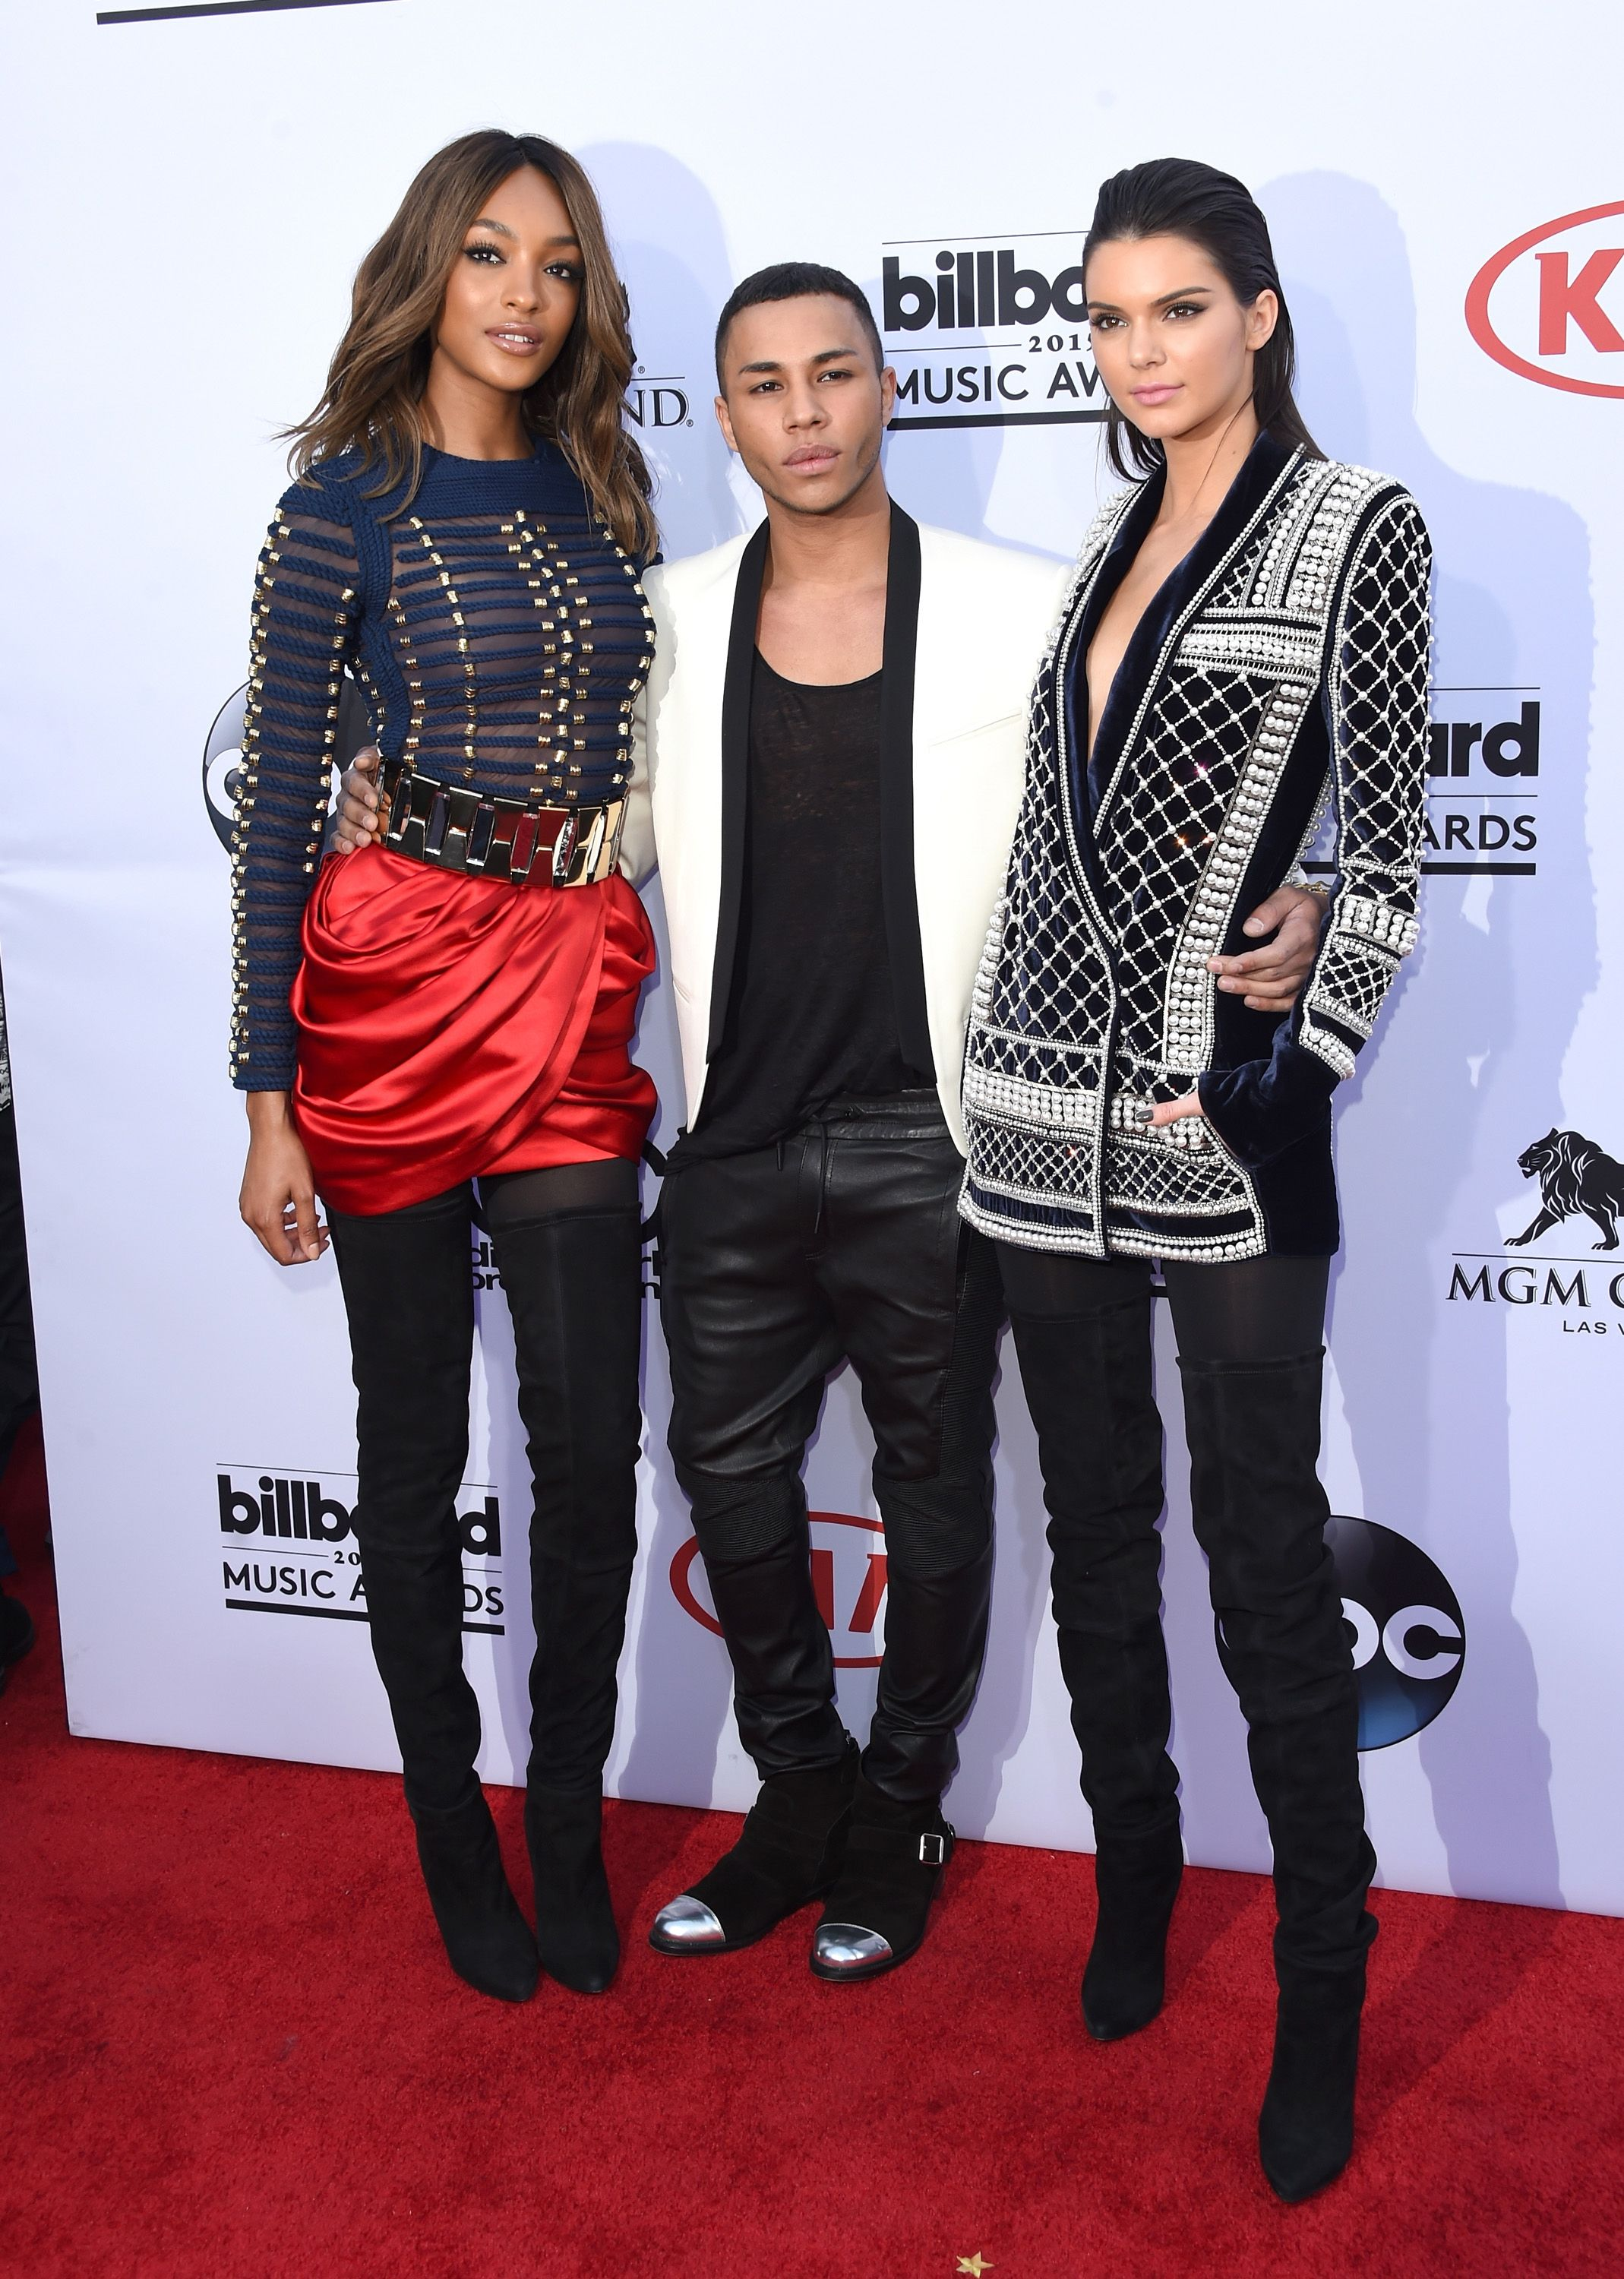 Olivier Rousteing Announces Balmain Collaboration With H&M - Daily Front Row -